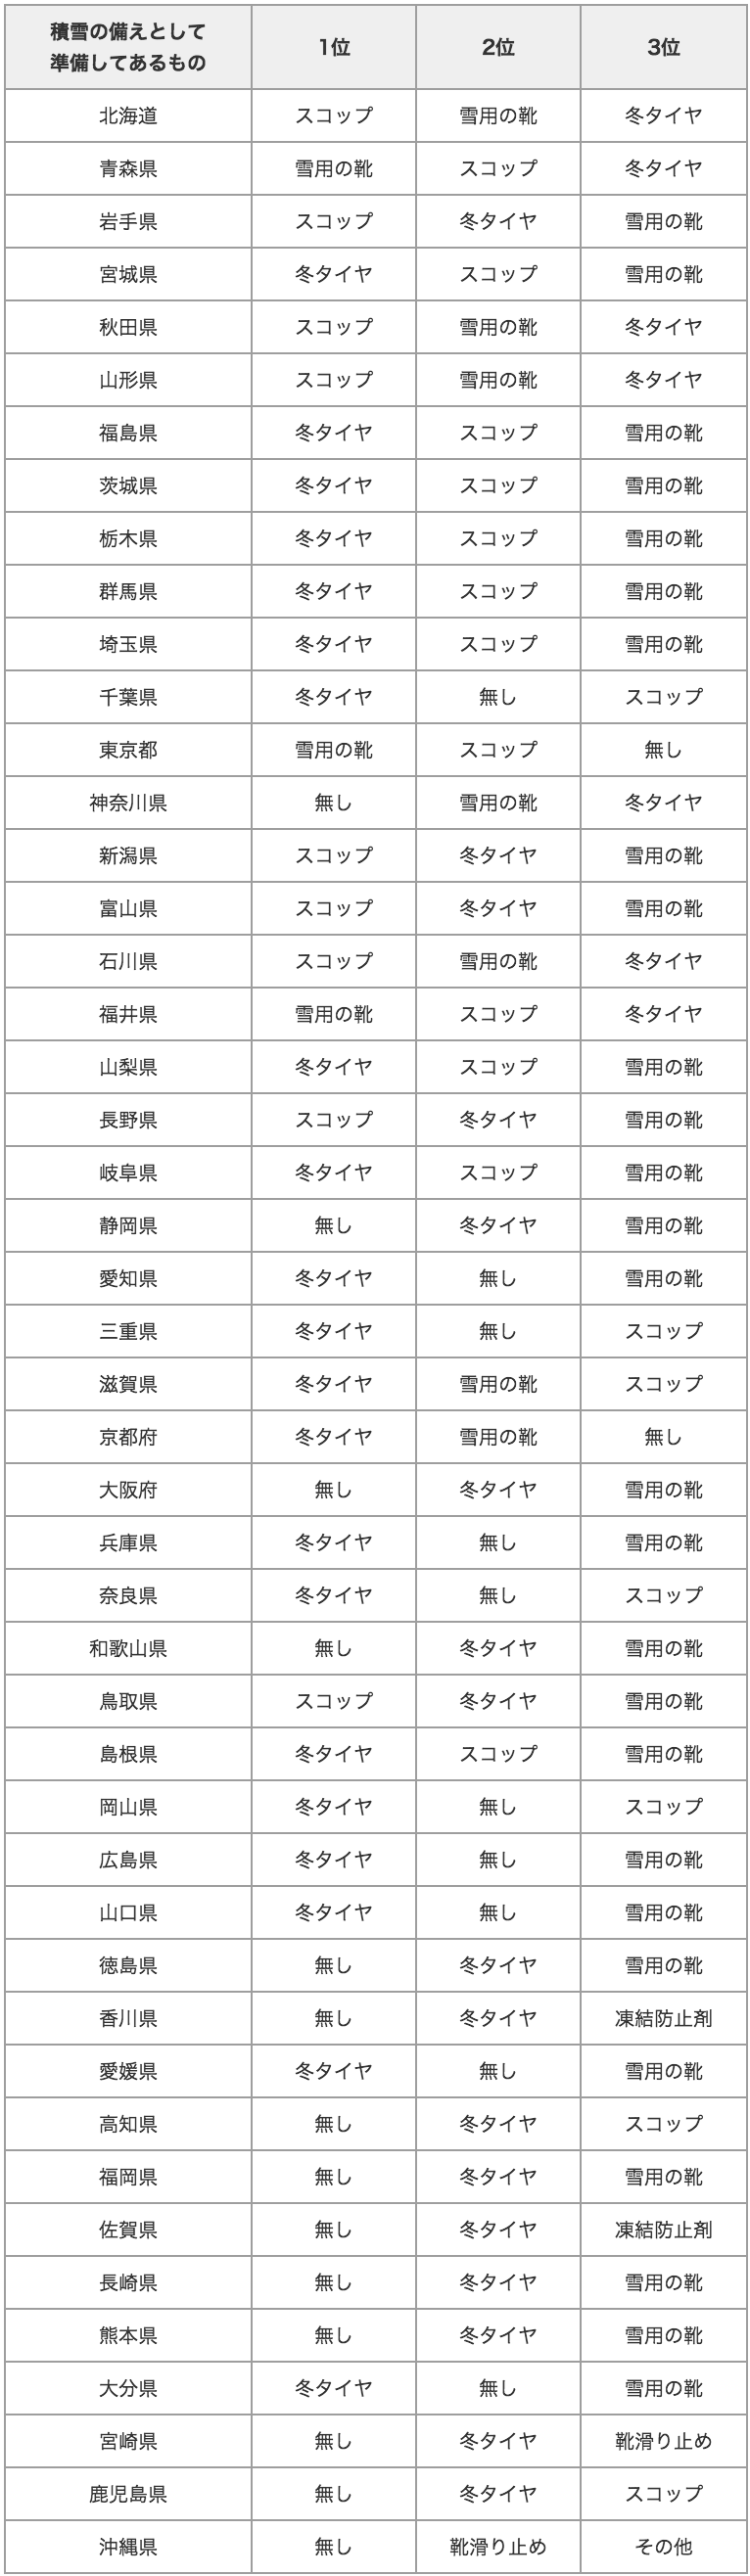 20120221_table1